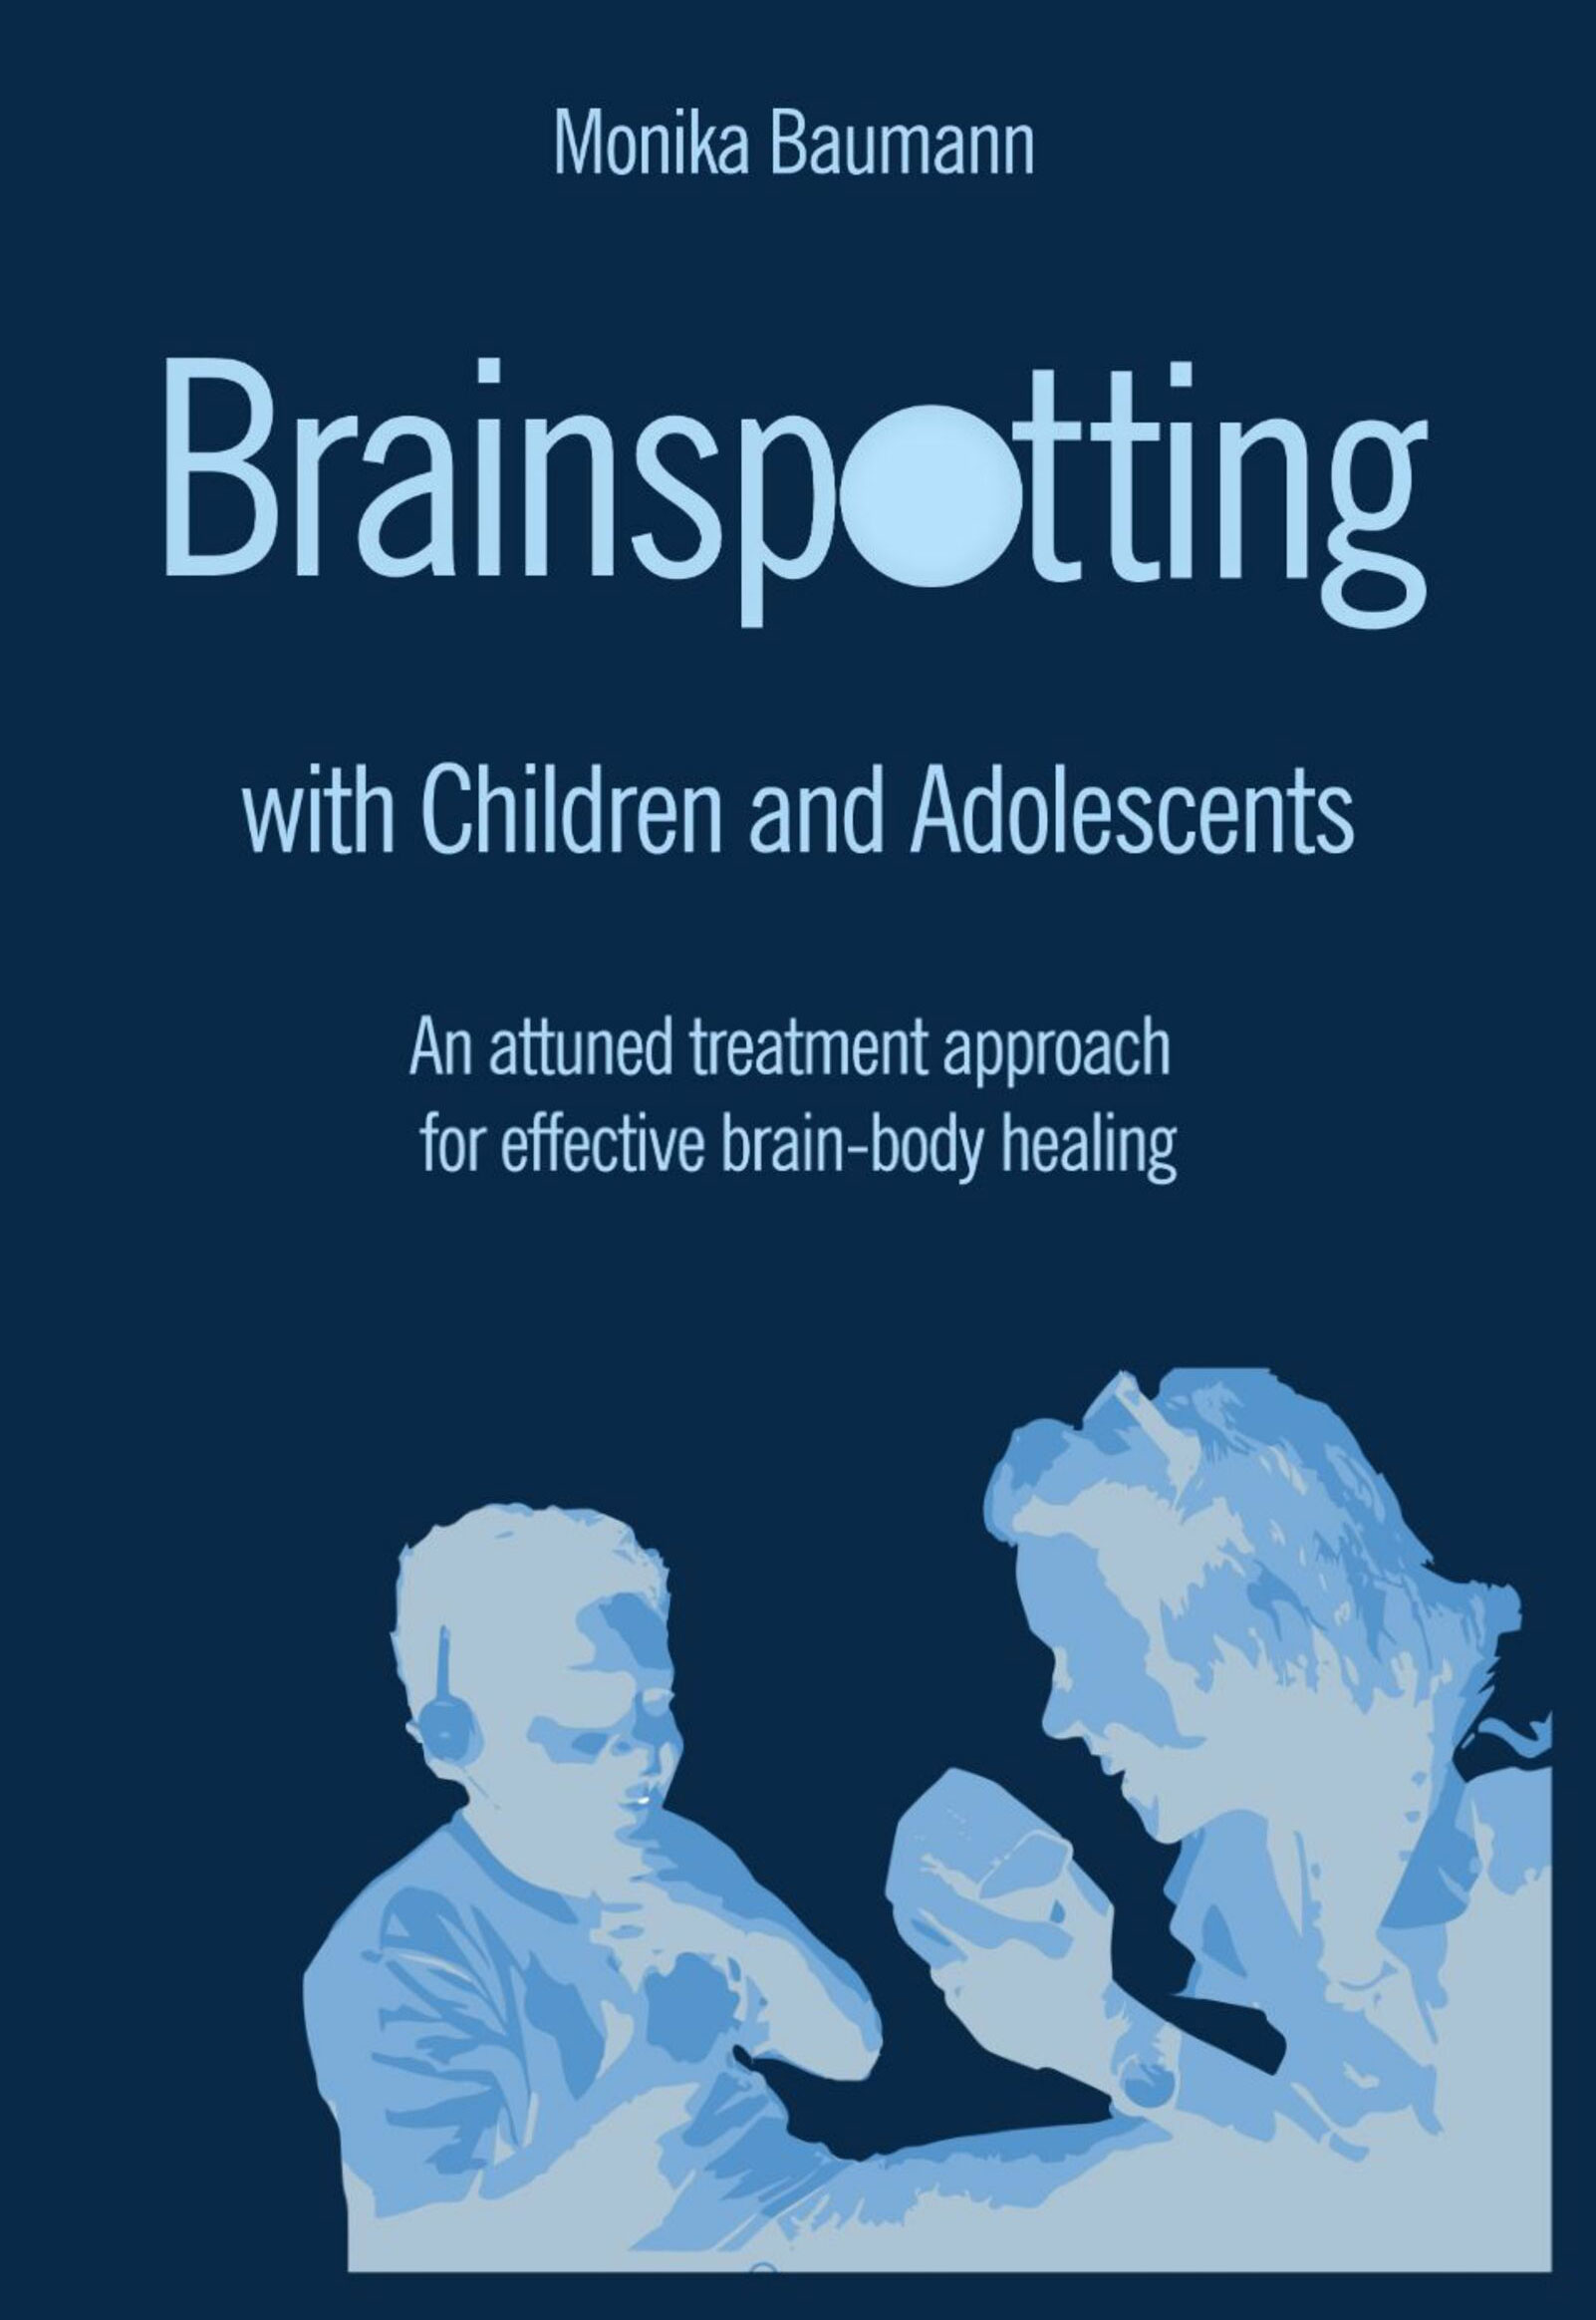 Cover in blue: Brainspotting with Children and Adolescents